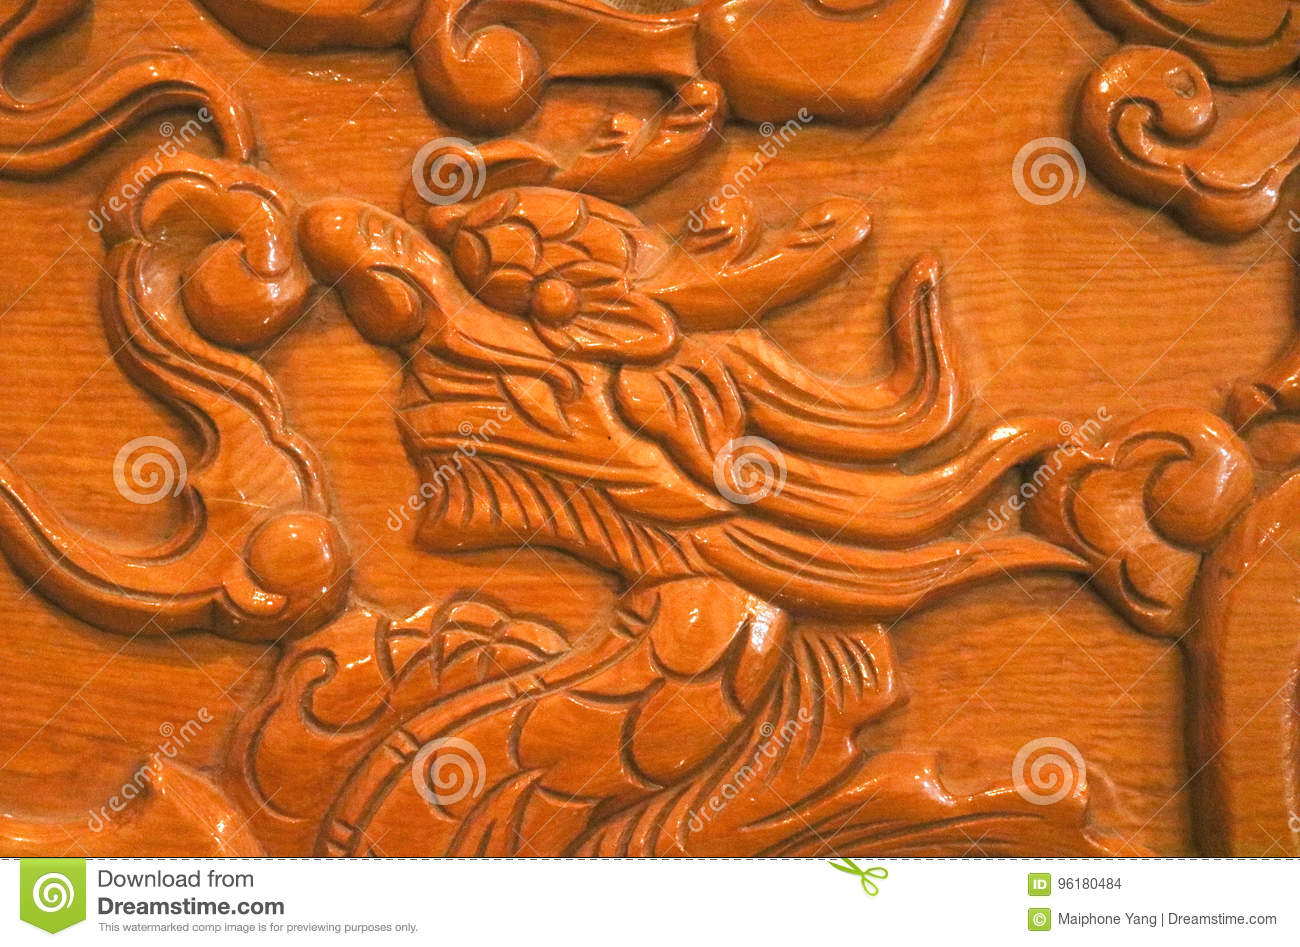 Wooden Carve Of Lao Furniture Stock Photo - Image of painting